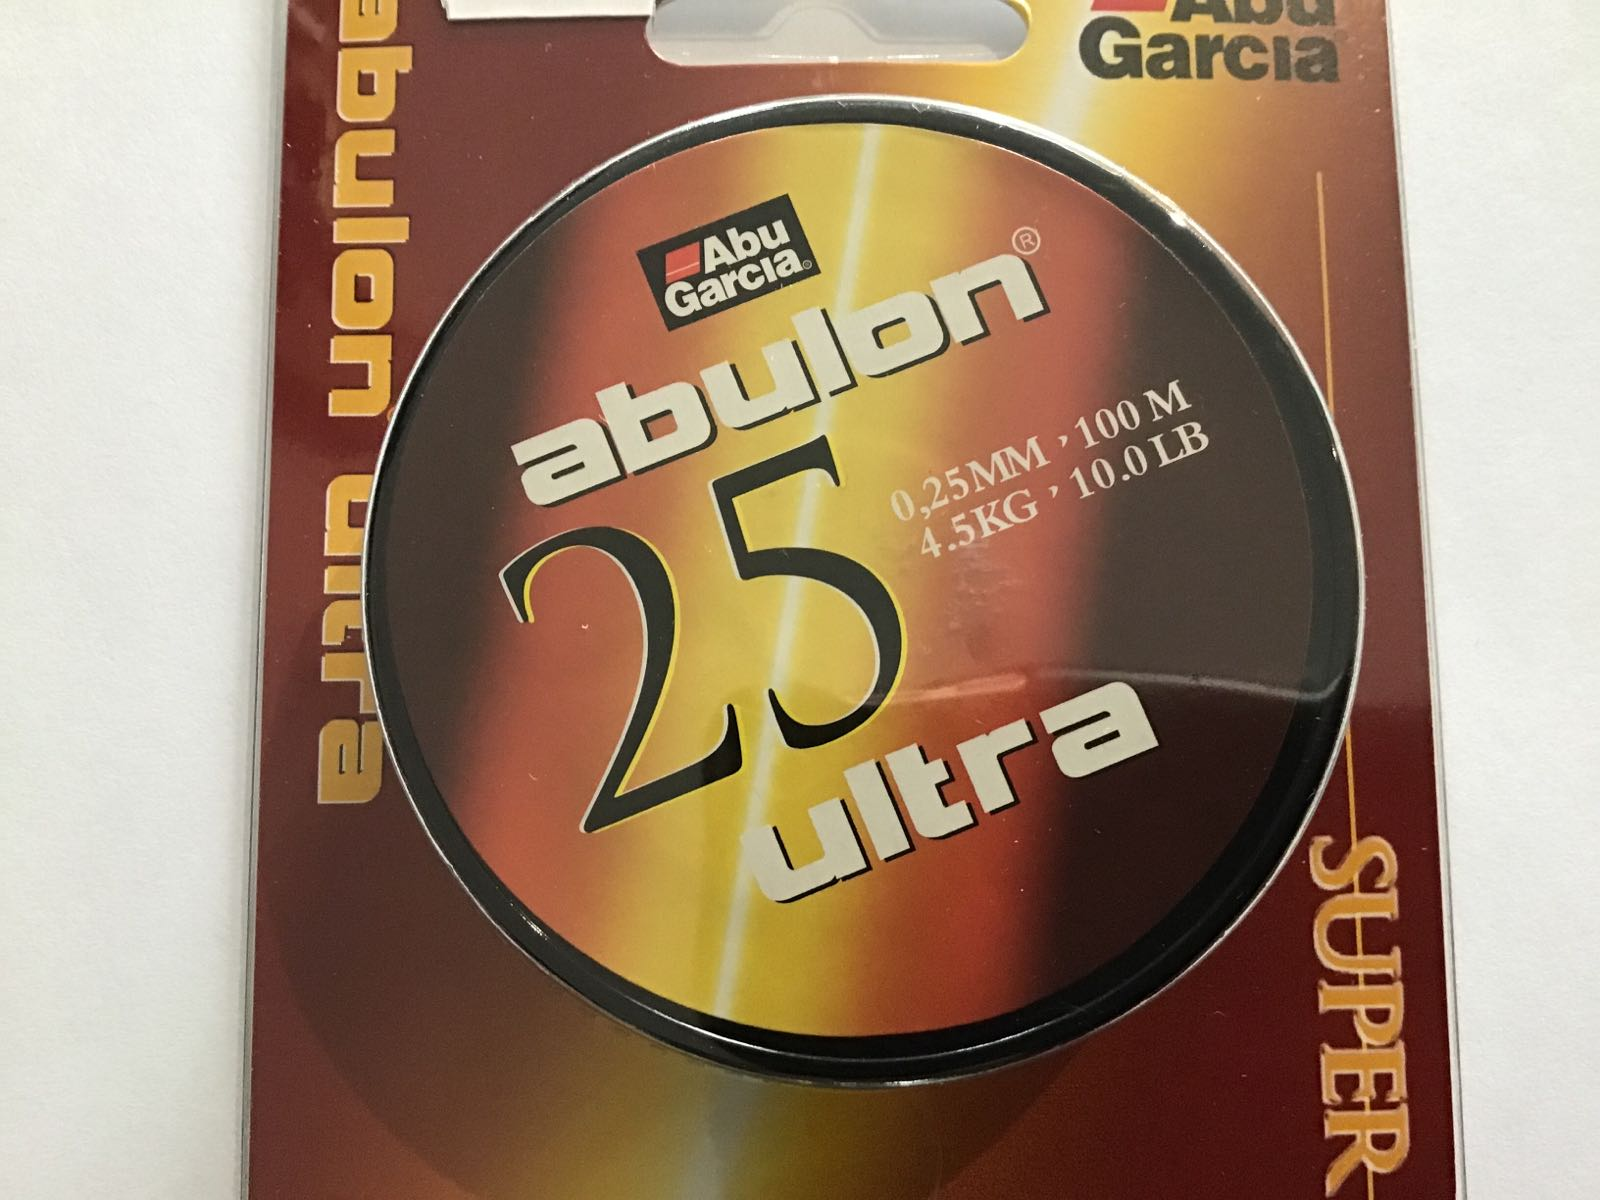 Abu garcia abulon ultra 25 mm